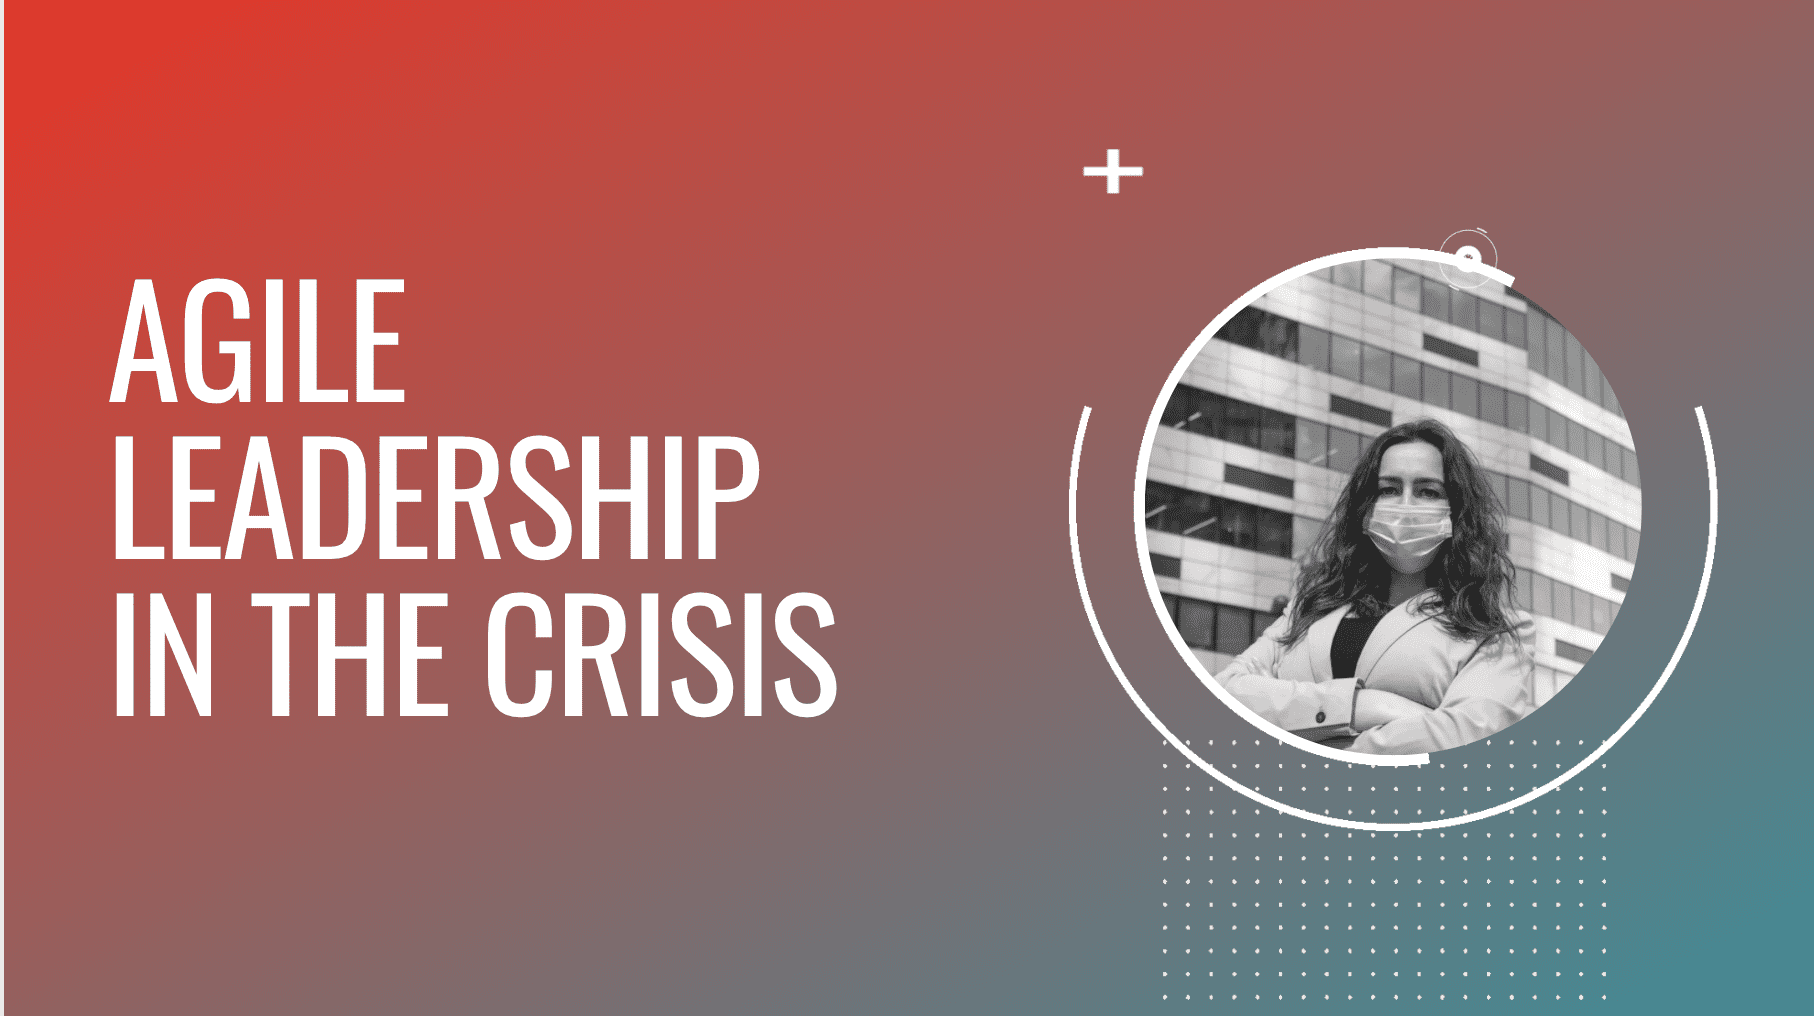 Agile Leadership in the Crisis